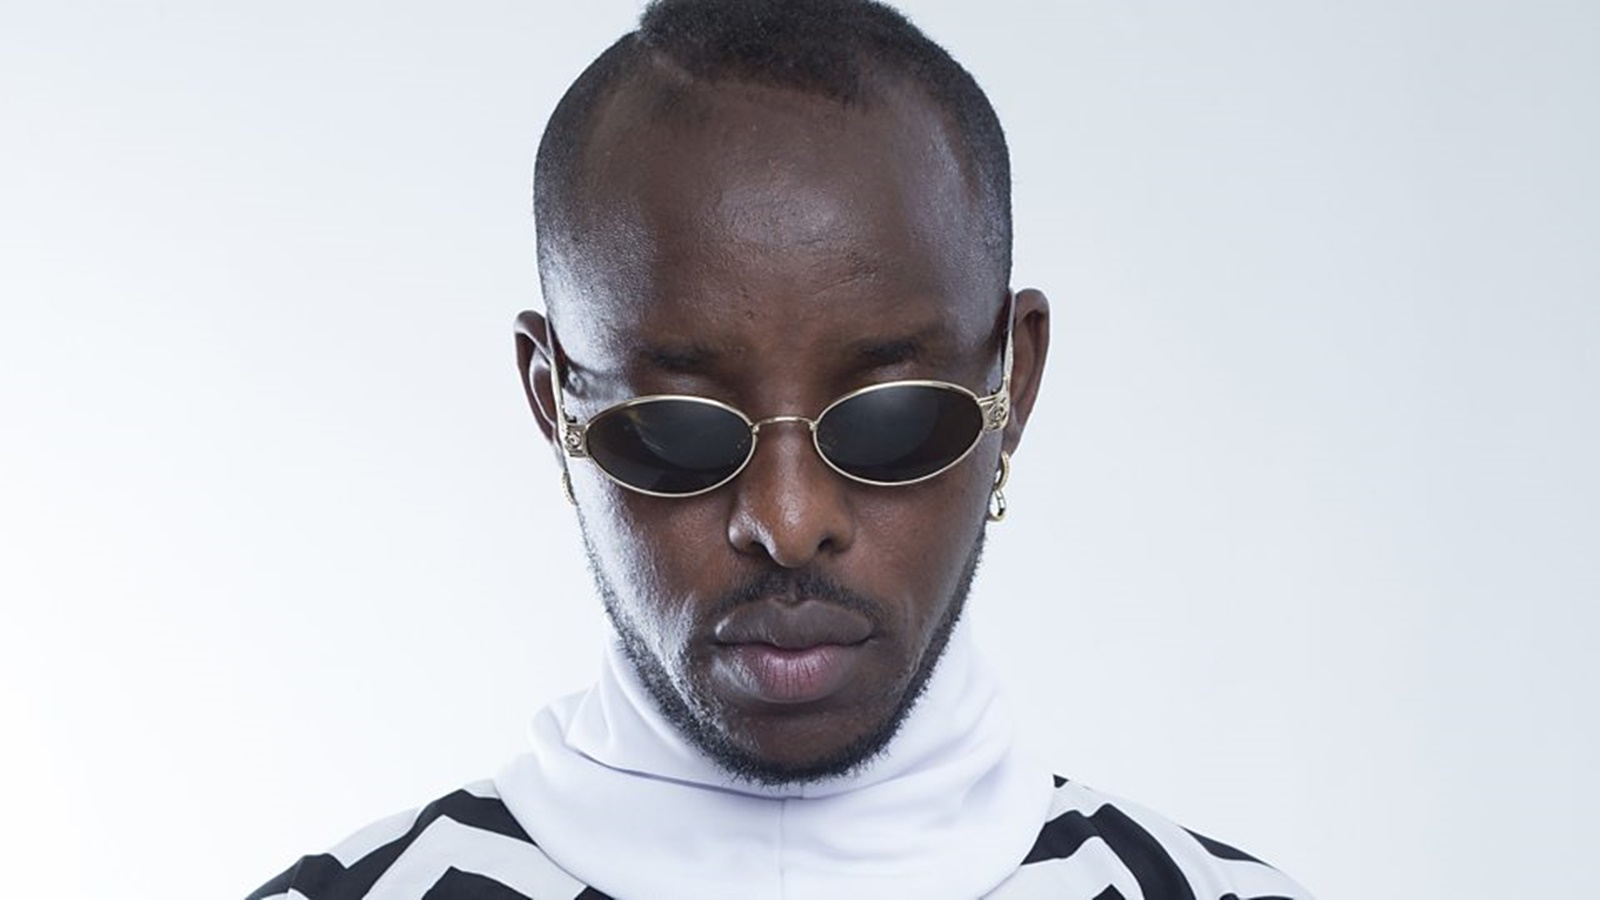 Eddy Kenzo named among the Top 15 Sub-Saharan African Artists by Billboard:  1 MUGIBSON WRITES